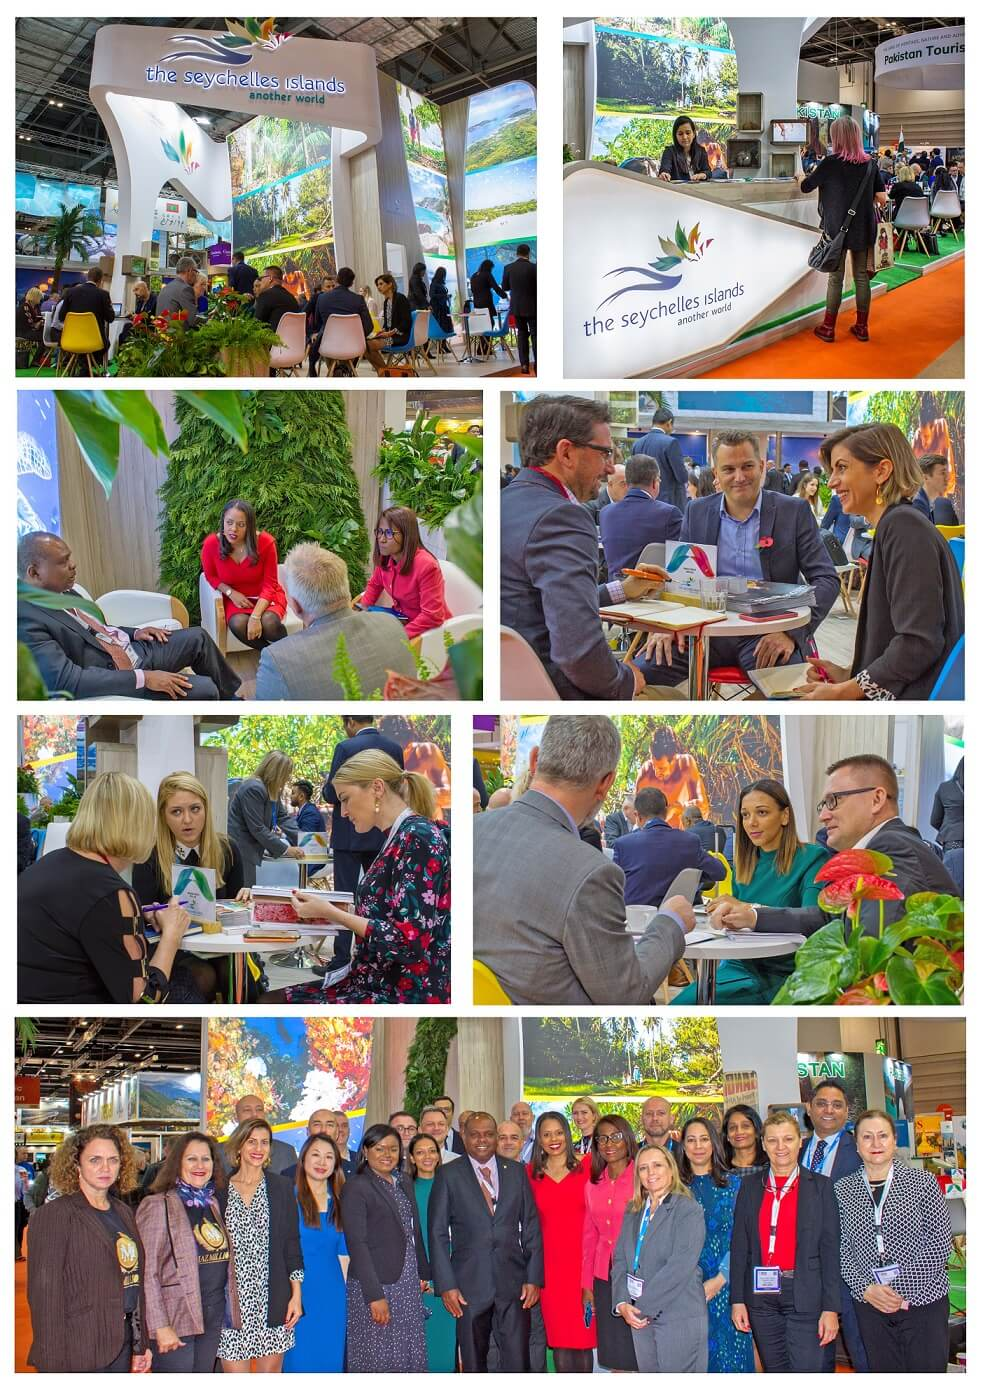 Another successful World Travel Market for the Seychelles